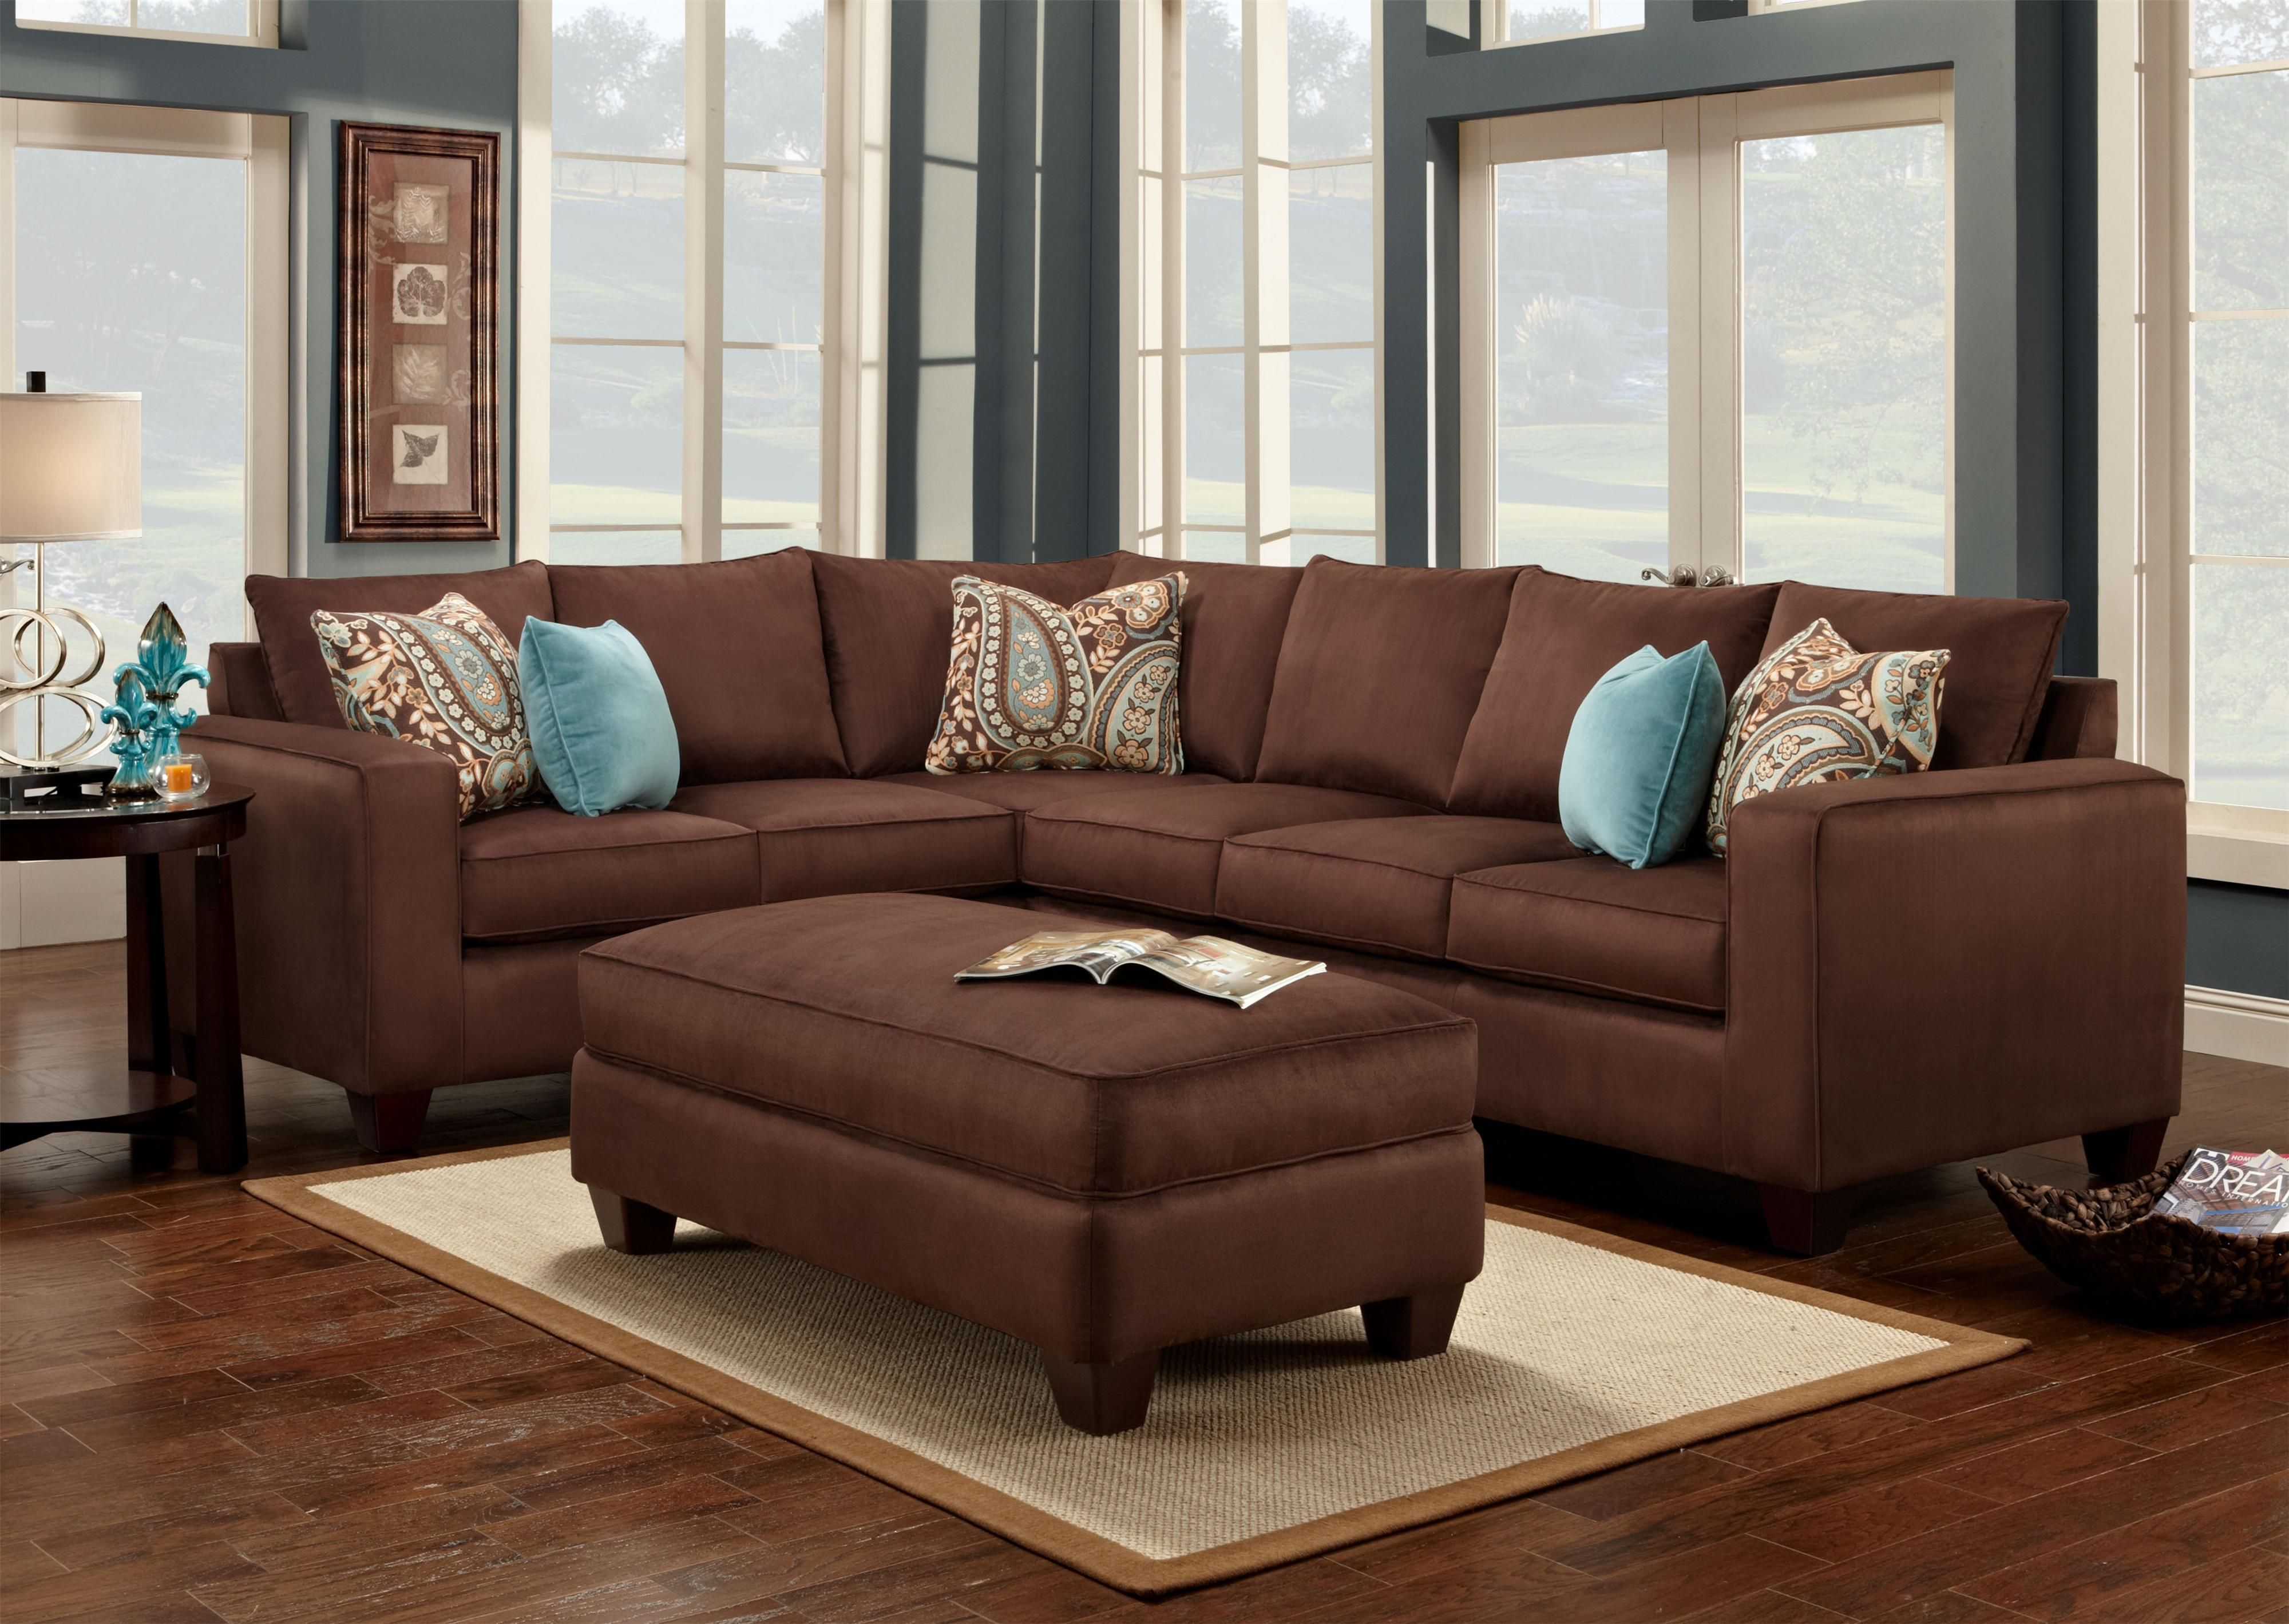 Accent Chairs To Go With Brown Leather Sofa Turquoise Is A Great Accent Color To Chocolate Brown Accent